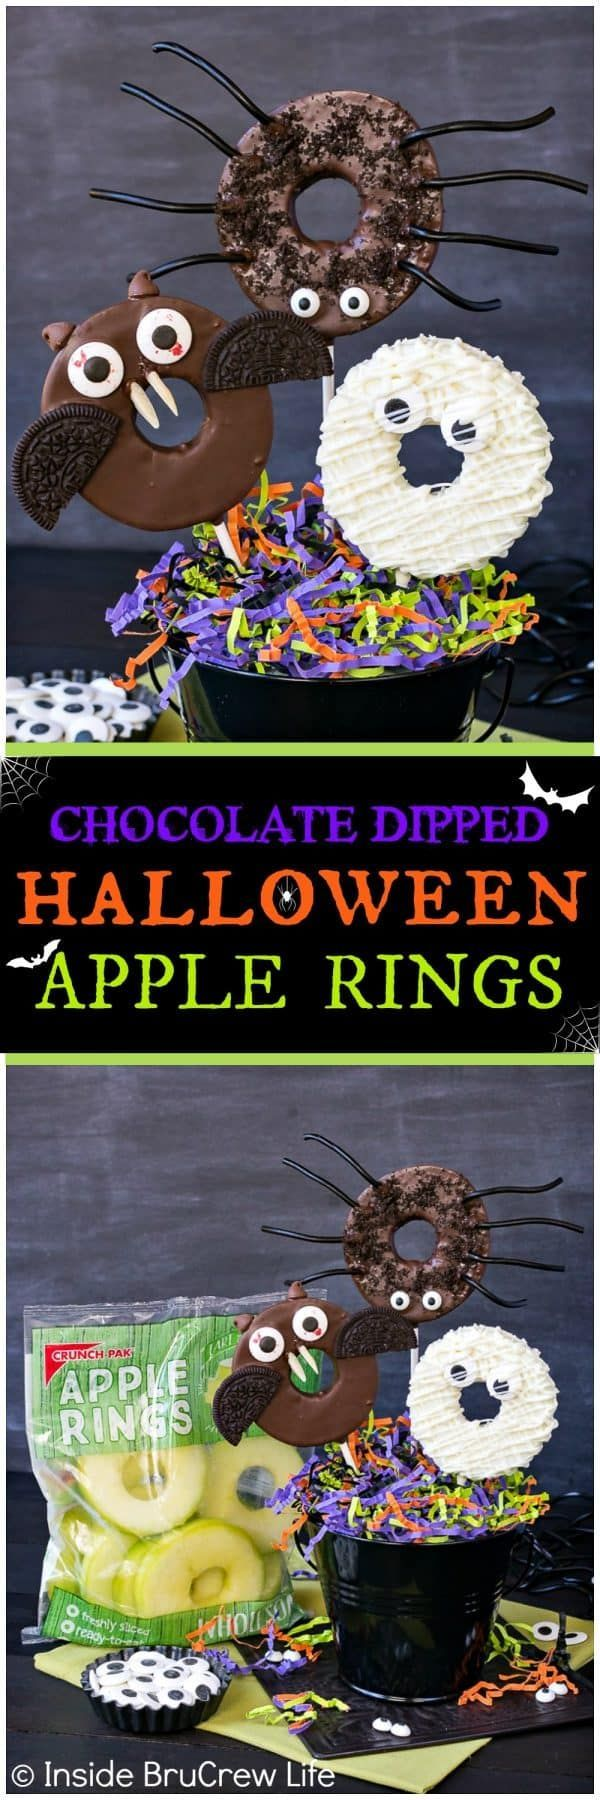 Chocolate Dipped Halloween Apple Rings - candy eyes and cookies add a fun twist to these easy chocolate covered apples. Easy no bake recipe for Halloween parties! #apples #crunchpak #halloween